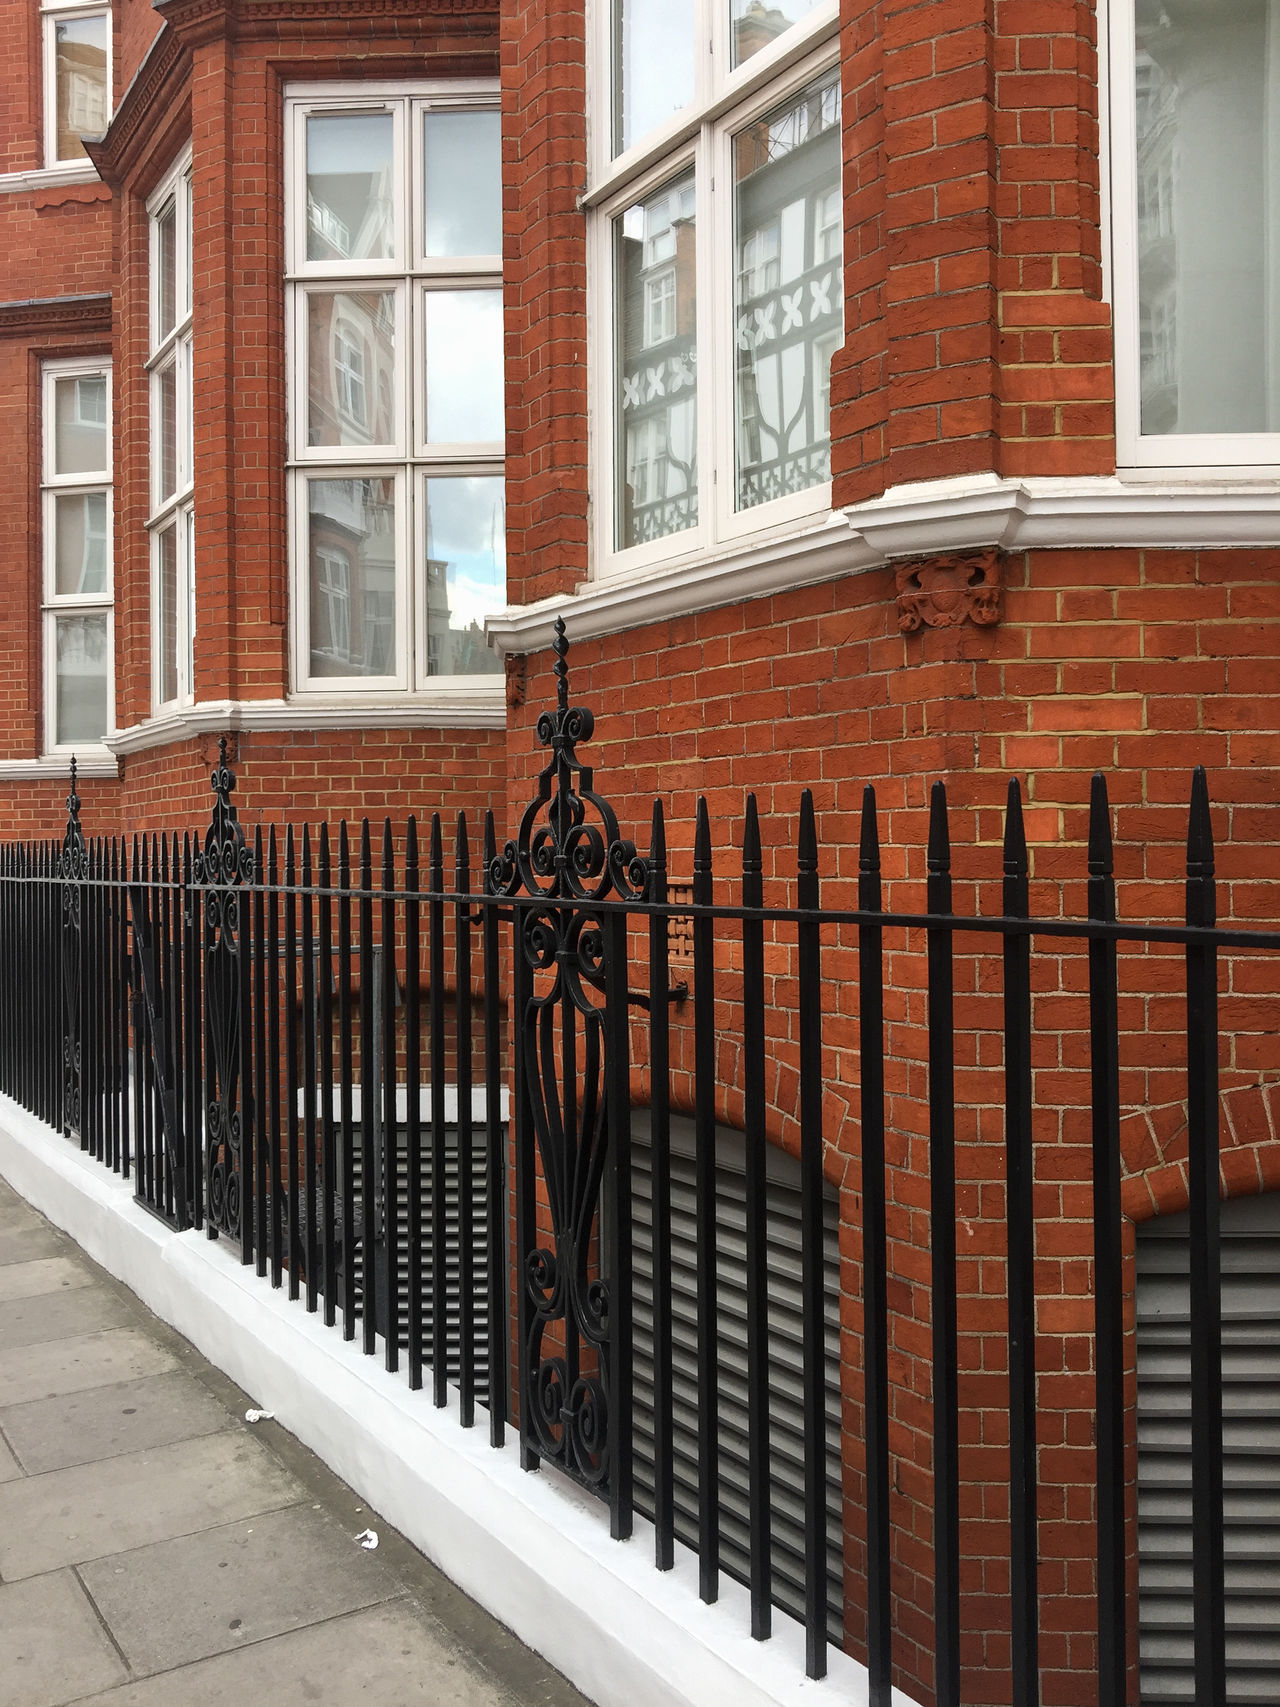 Beautiful West Kensington architecture in London. Gate Ironwork  Kensington London Architecture Brick Building Exterior Built Structure Day No People Outdoors Railing Residential Building Residential District Window Wrought Iron